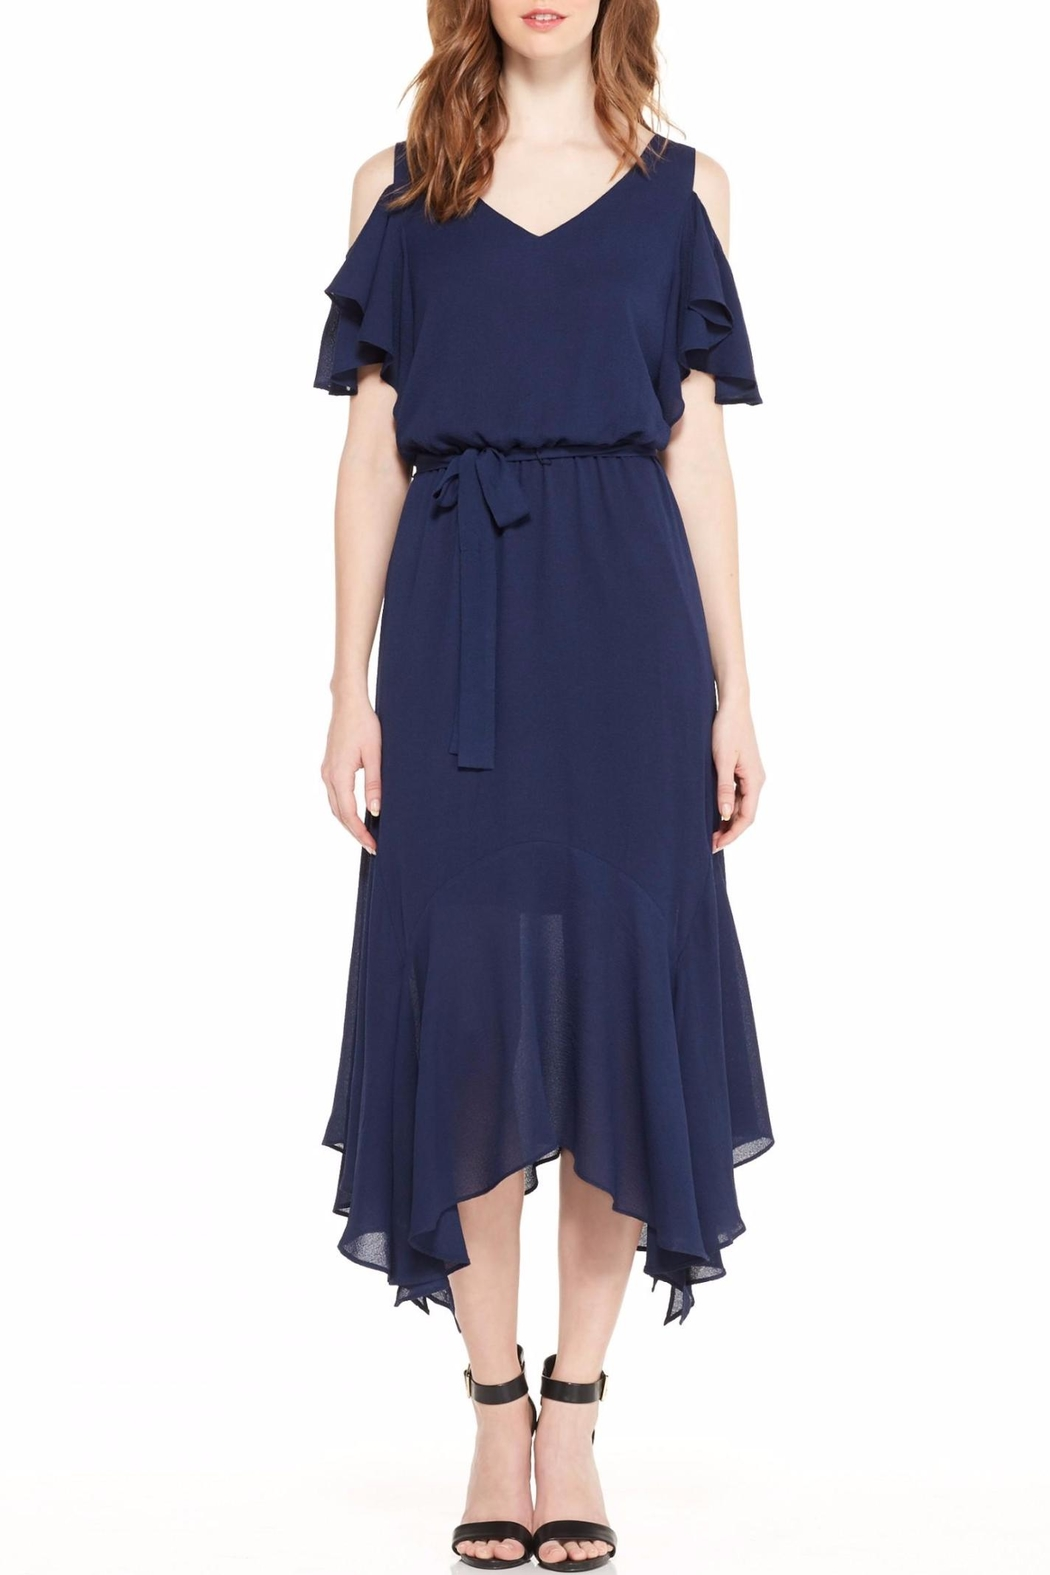 Maggy London Navy Cold Shoulder Dress - Front Cropped Image